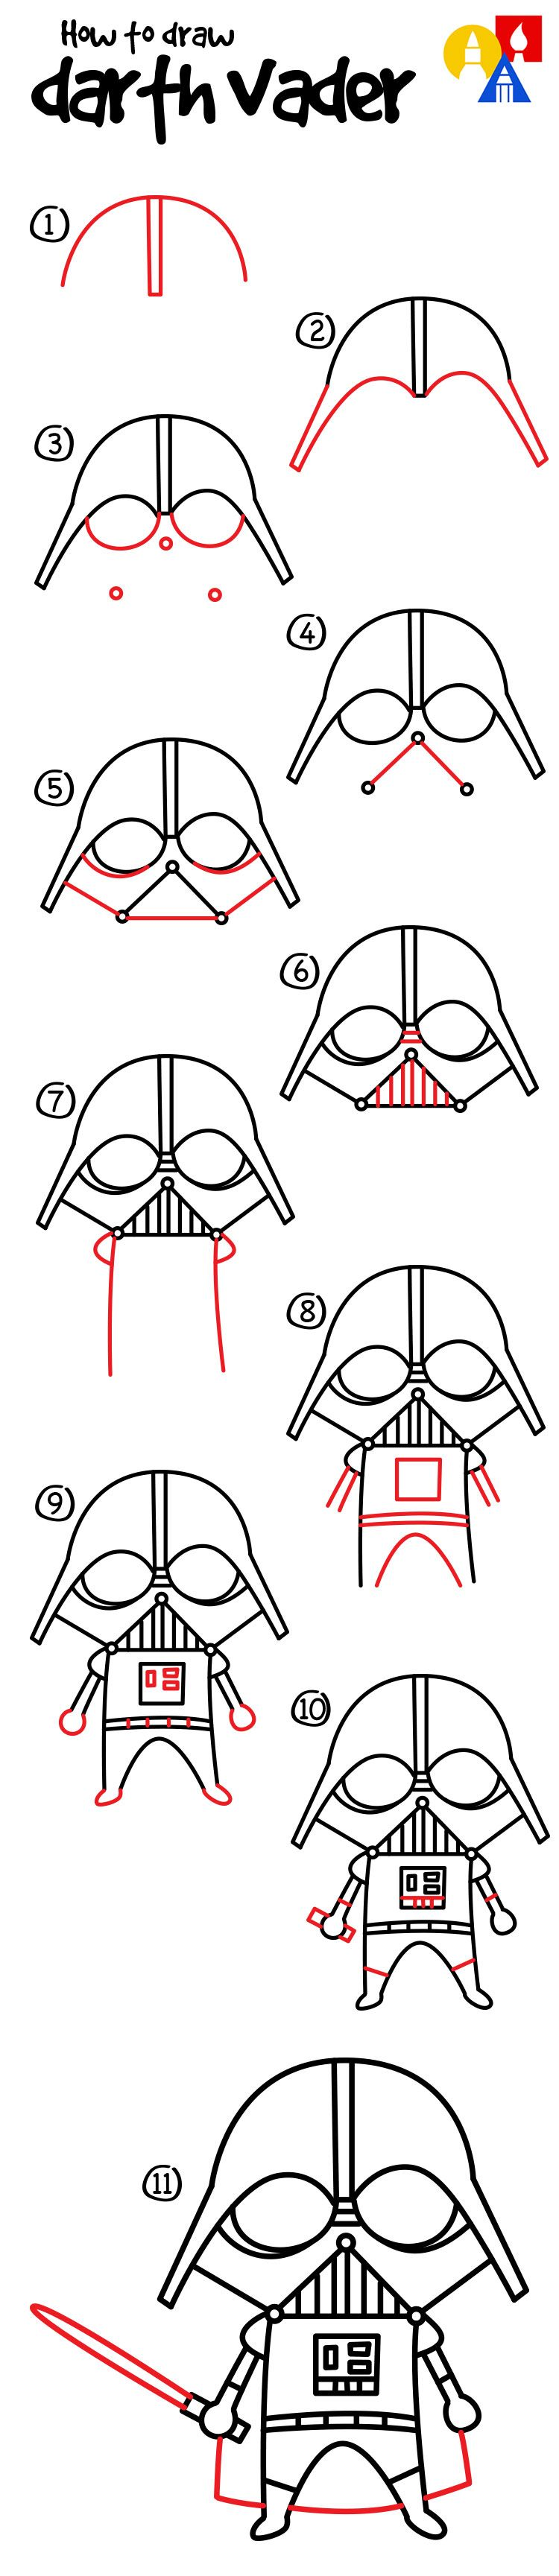 How To Draw A Cartoon Darth Vader Art For Kids Hub Afkh Step